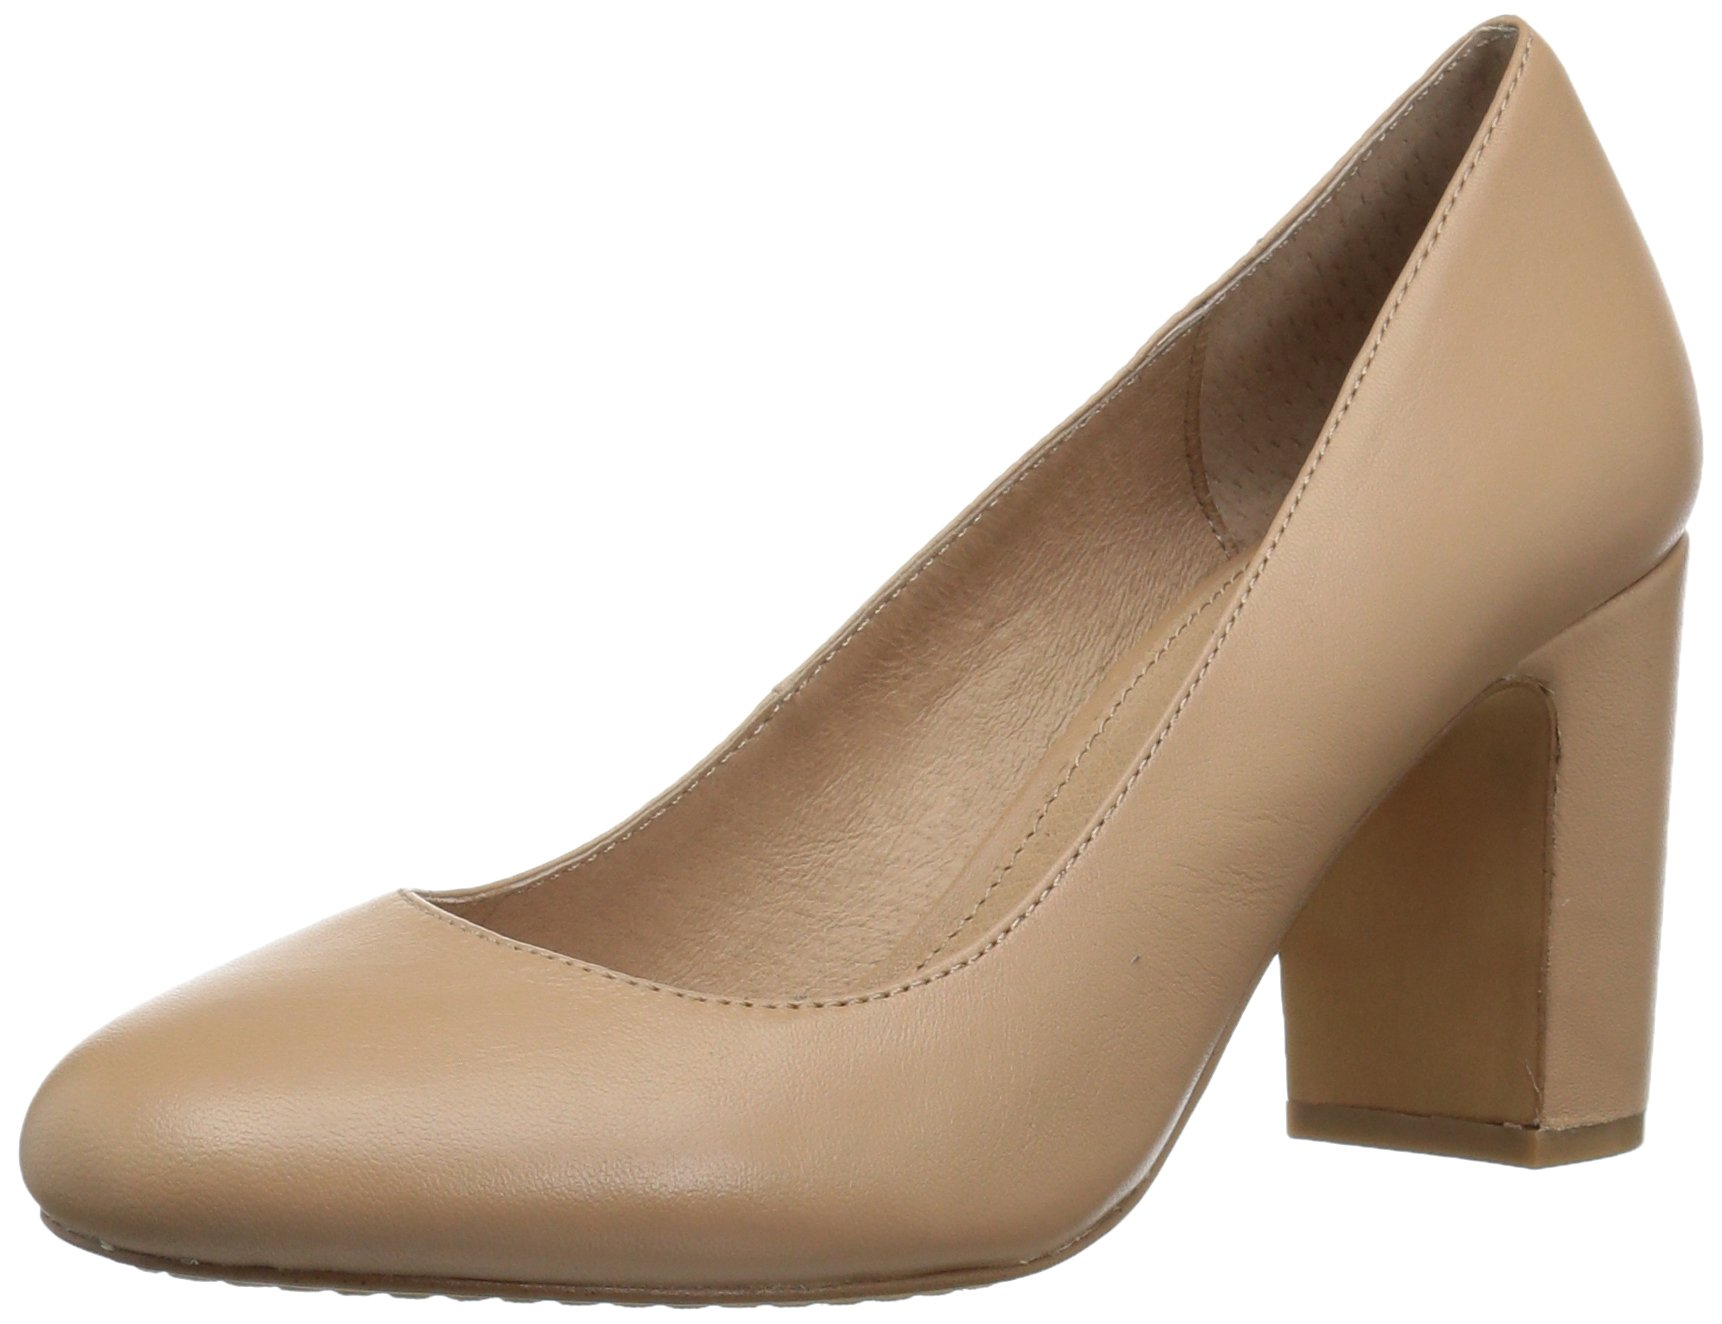 206 Collective Women's Coyle Round Toe Block Heel High Pump, Neutral Leather, 8.5 B US